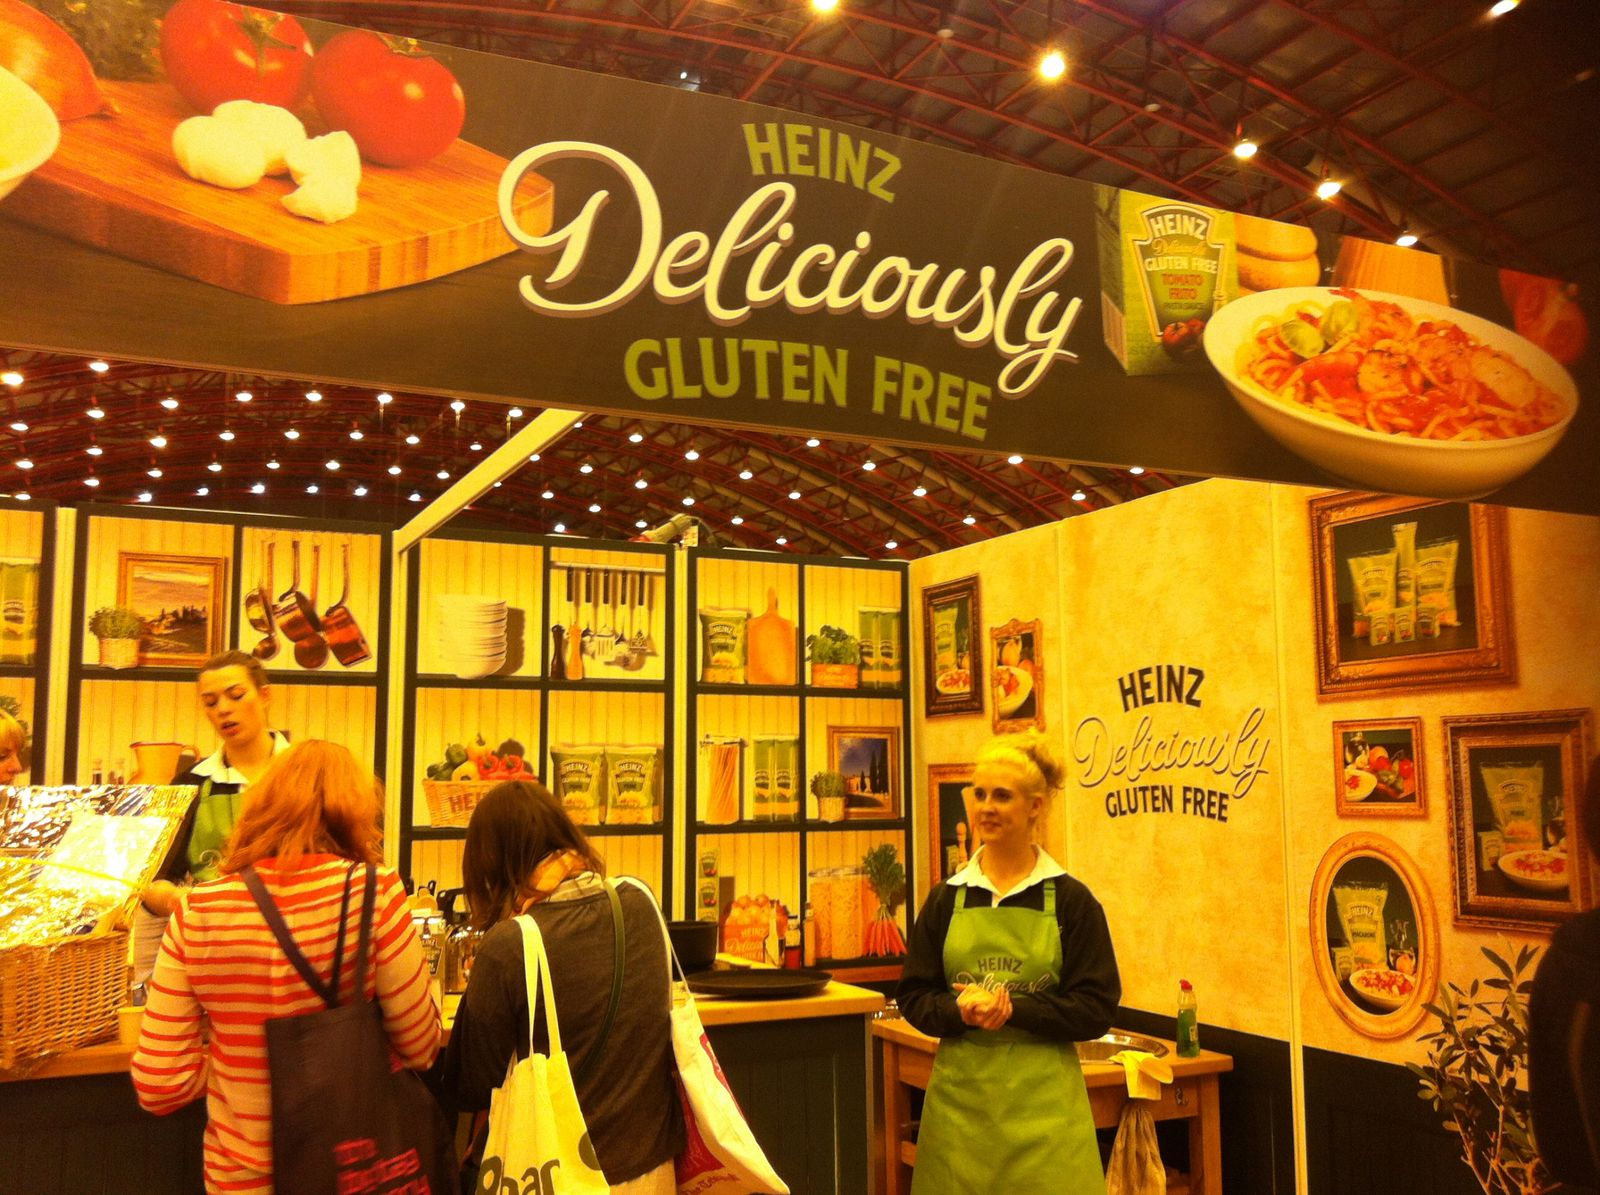 @ The Vitality Show, Earls Court